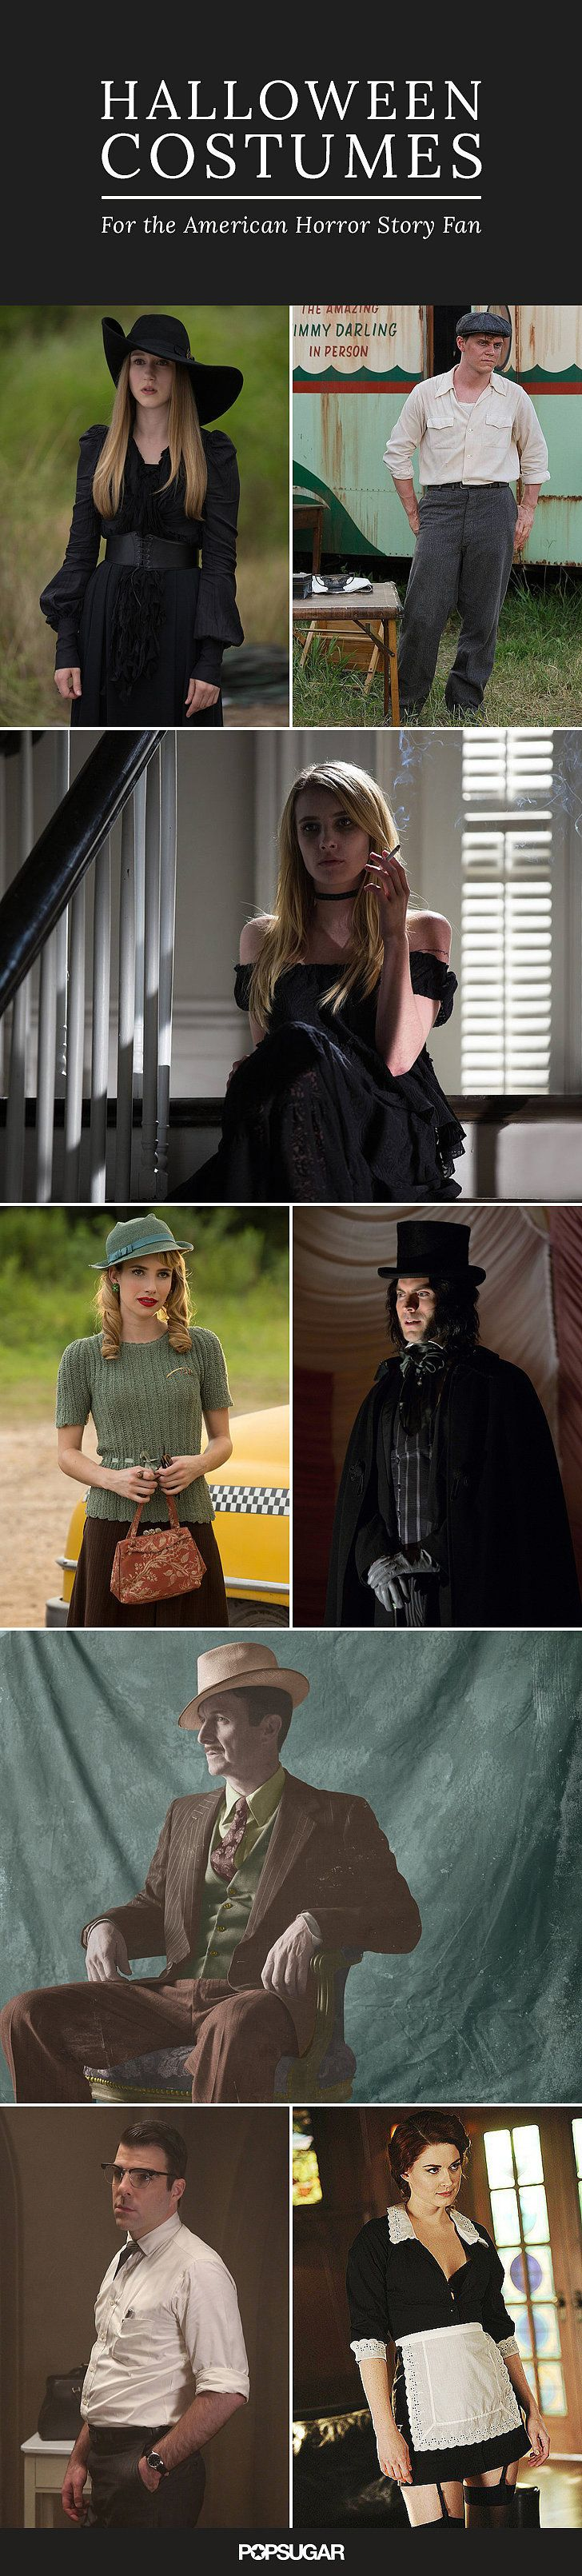 Over 40 American Horror Story Characters to Be This Halloween. They left a few out... Tate and Violet would be precious!